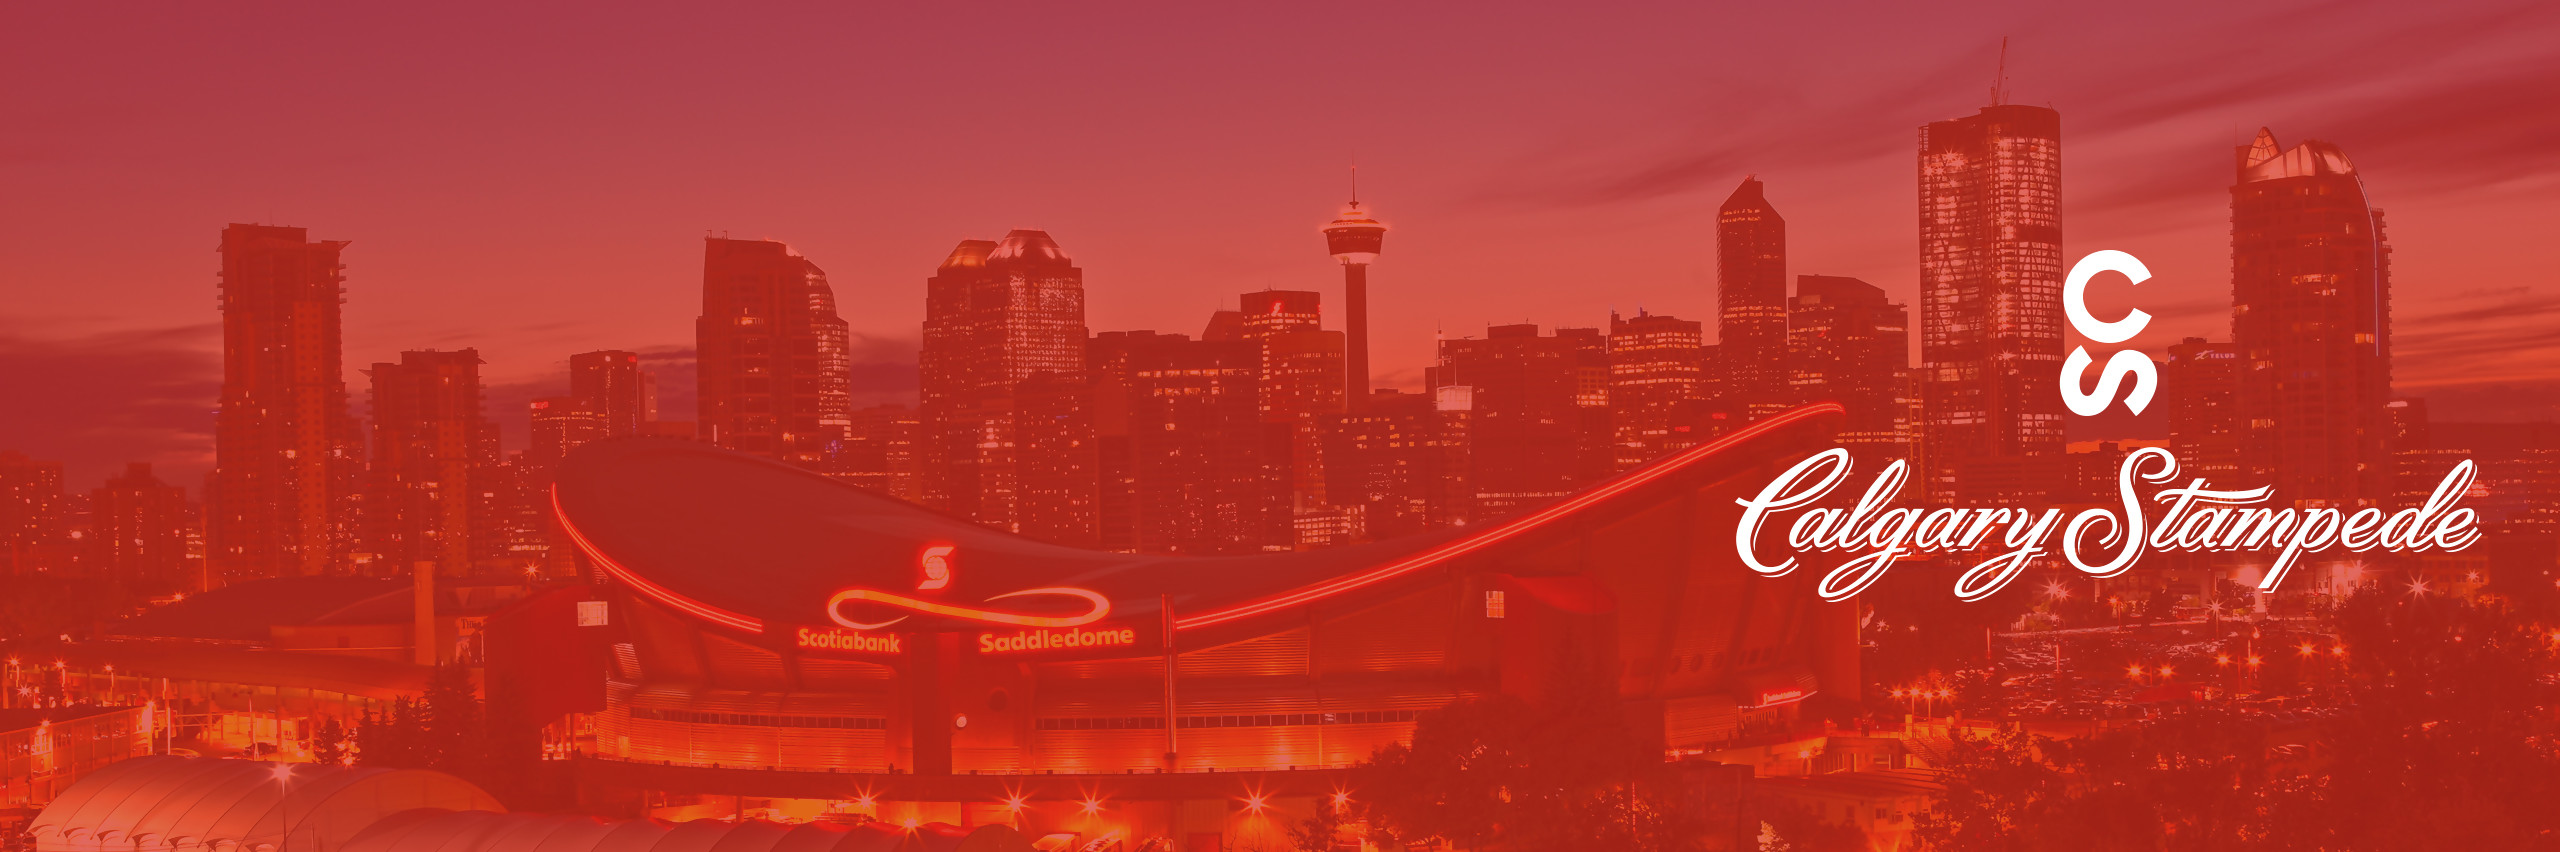 Calgary Stampede - Agriculture - Saddledome